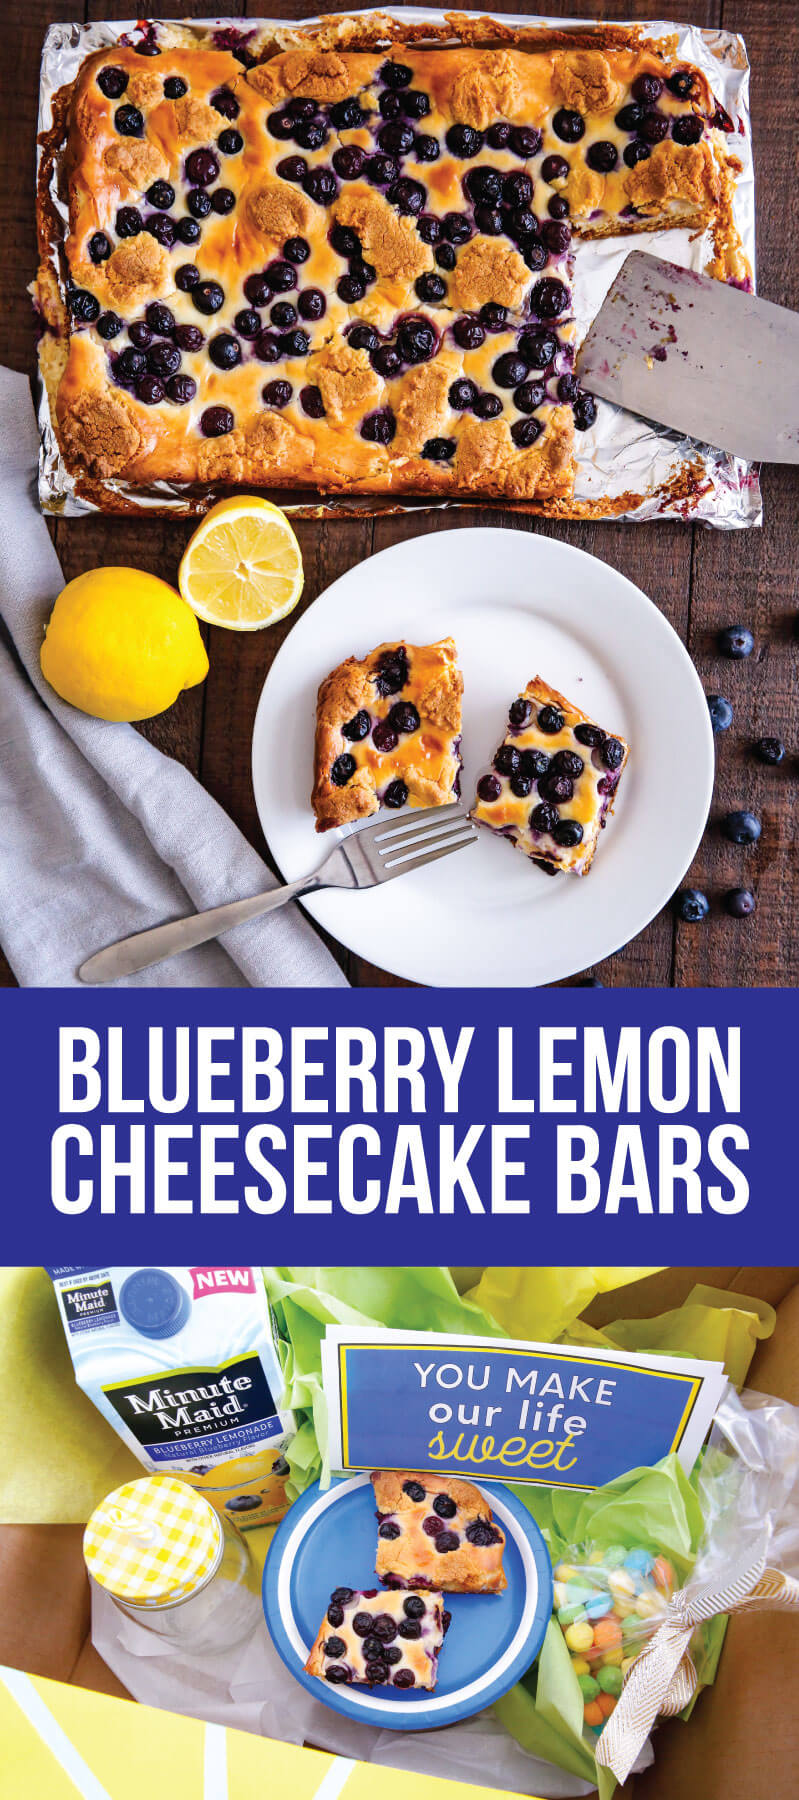 Blueberry Lemon Cheesecake Bars - try this simple and delicious recipe! You'll have a hard time stopping at one piece. from www.thirtyhandmadedays.com